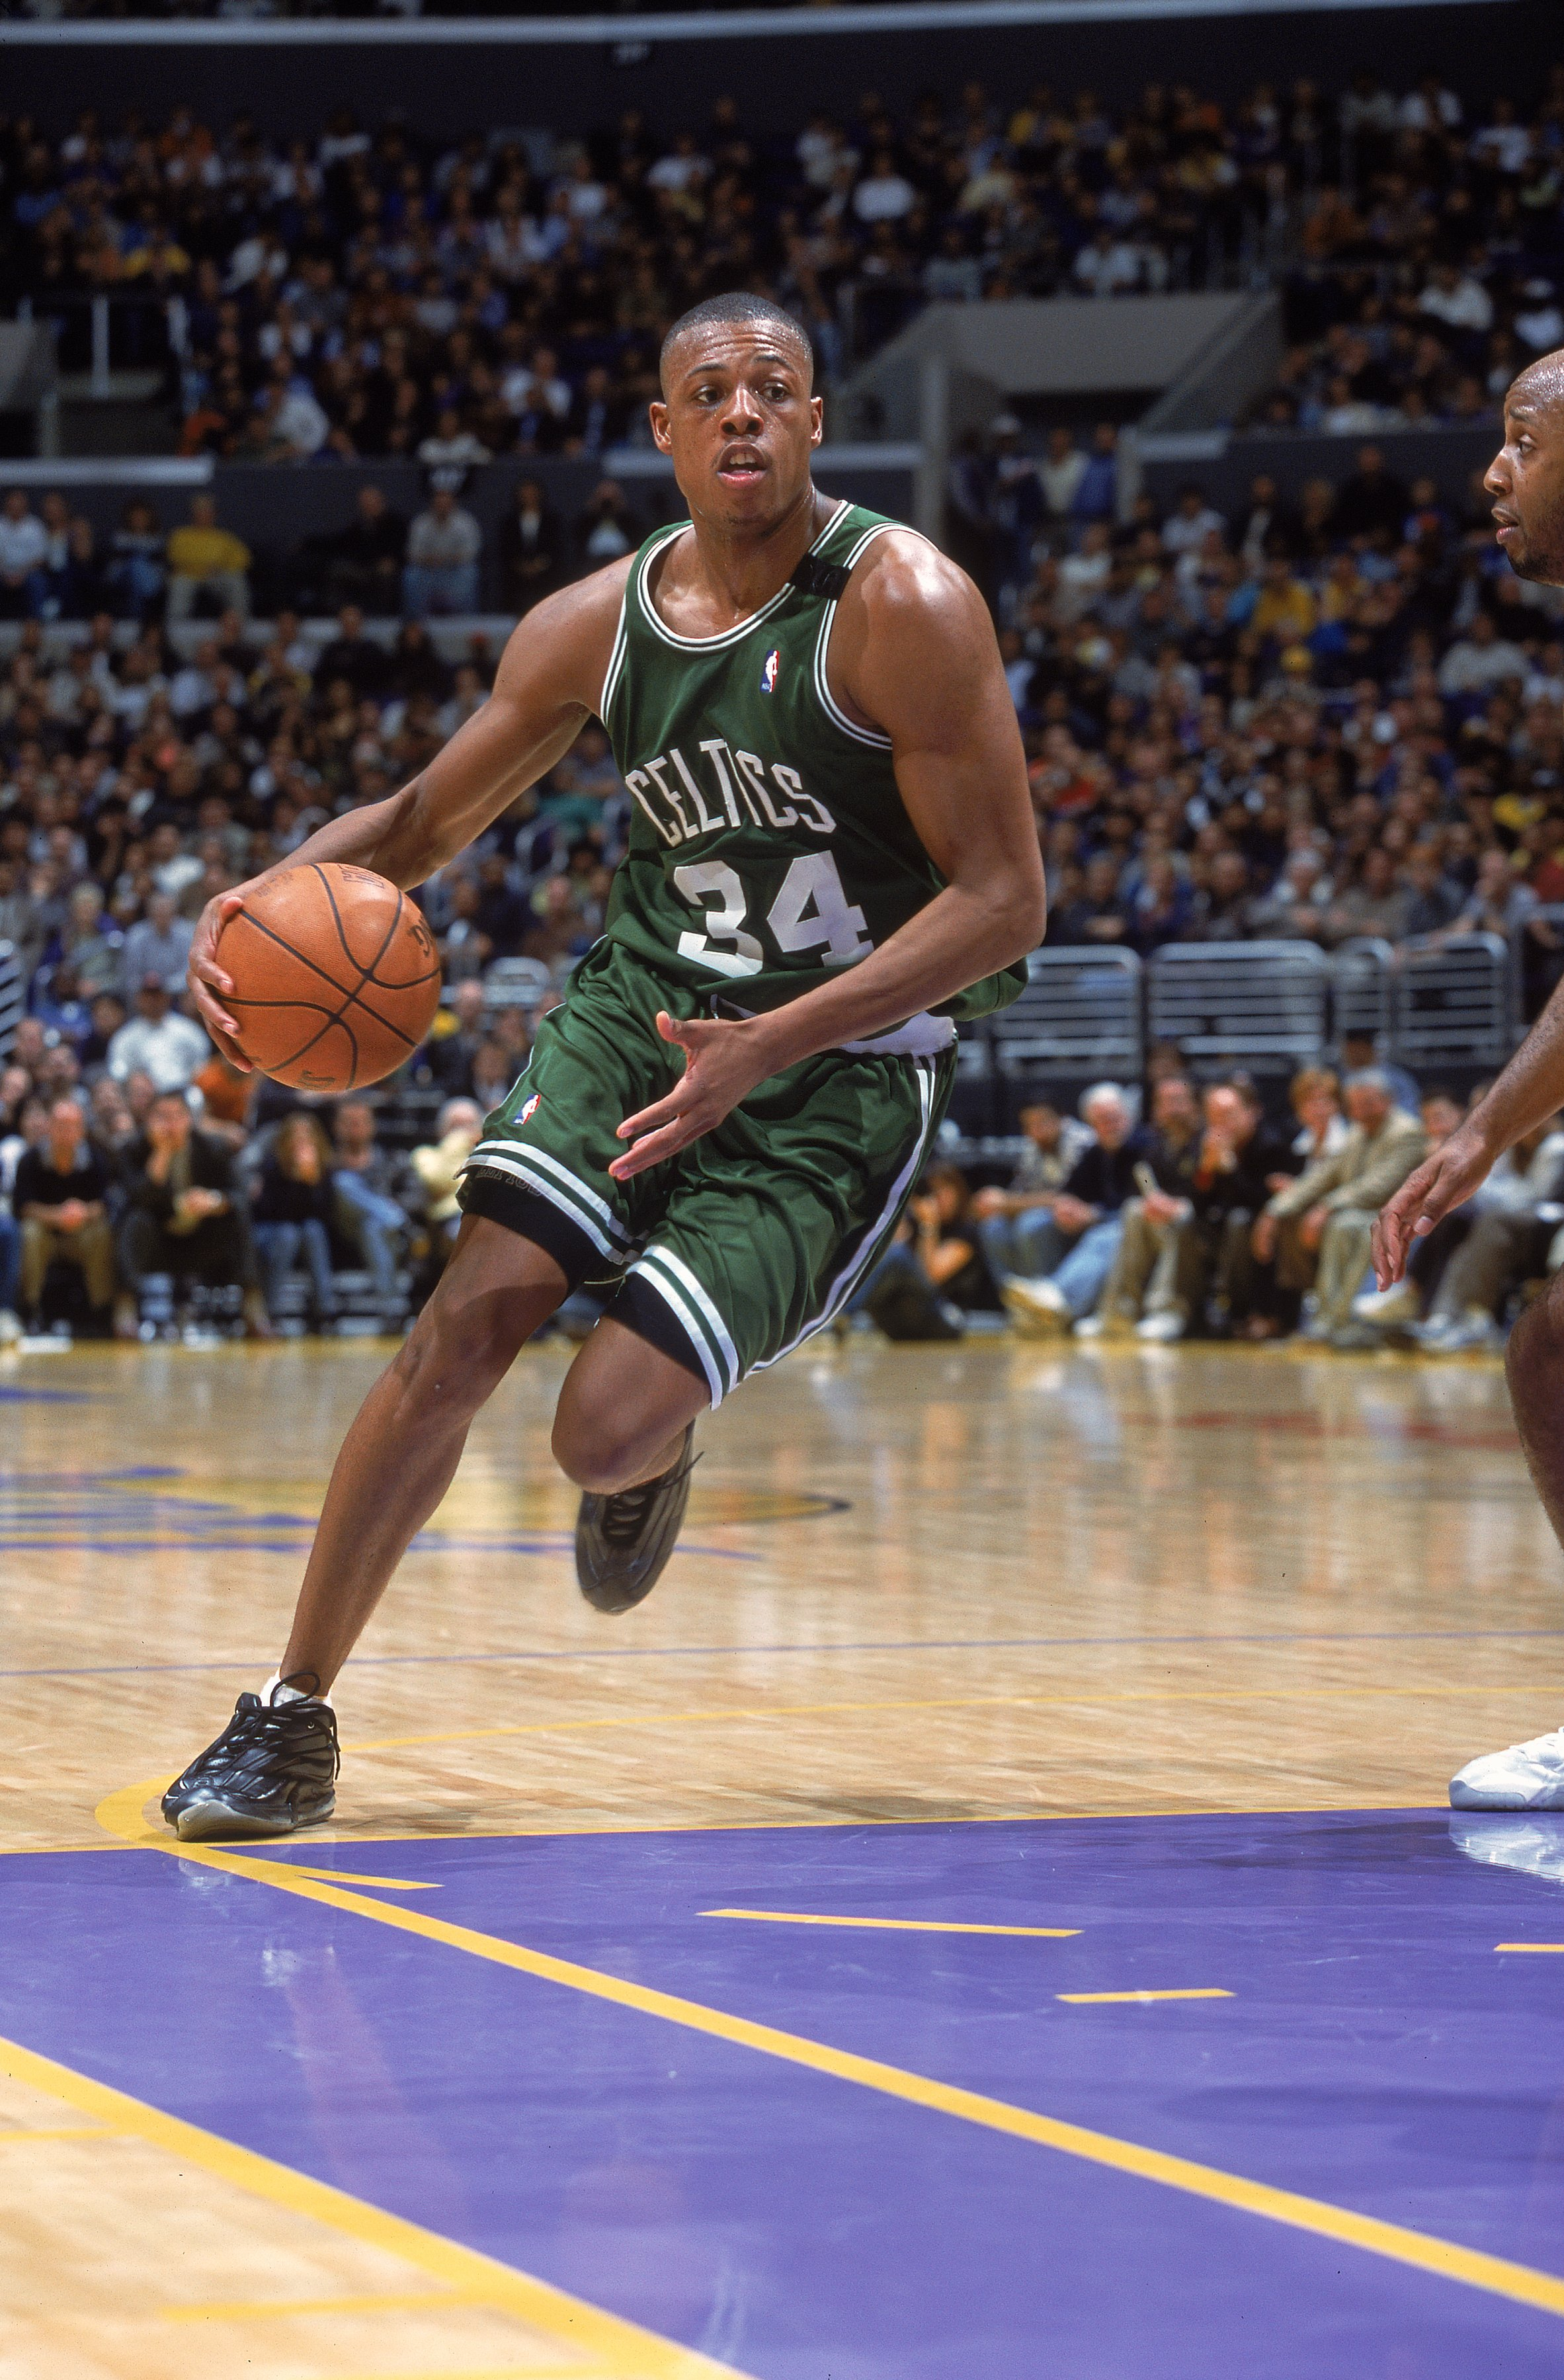 13 Mar 2001:  Paul Pierce #34 of the Boston Celtics takes the ball to the basket during the game against the Los Angeles Lakers at the Staples Center in Los Angeles, California. The Lakers defeated the Celtics 112-107. NOTE TO USER: It is expressly unders